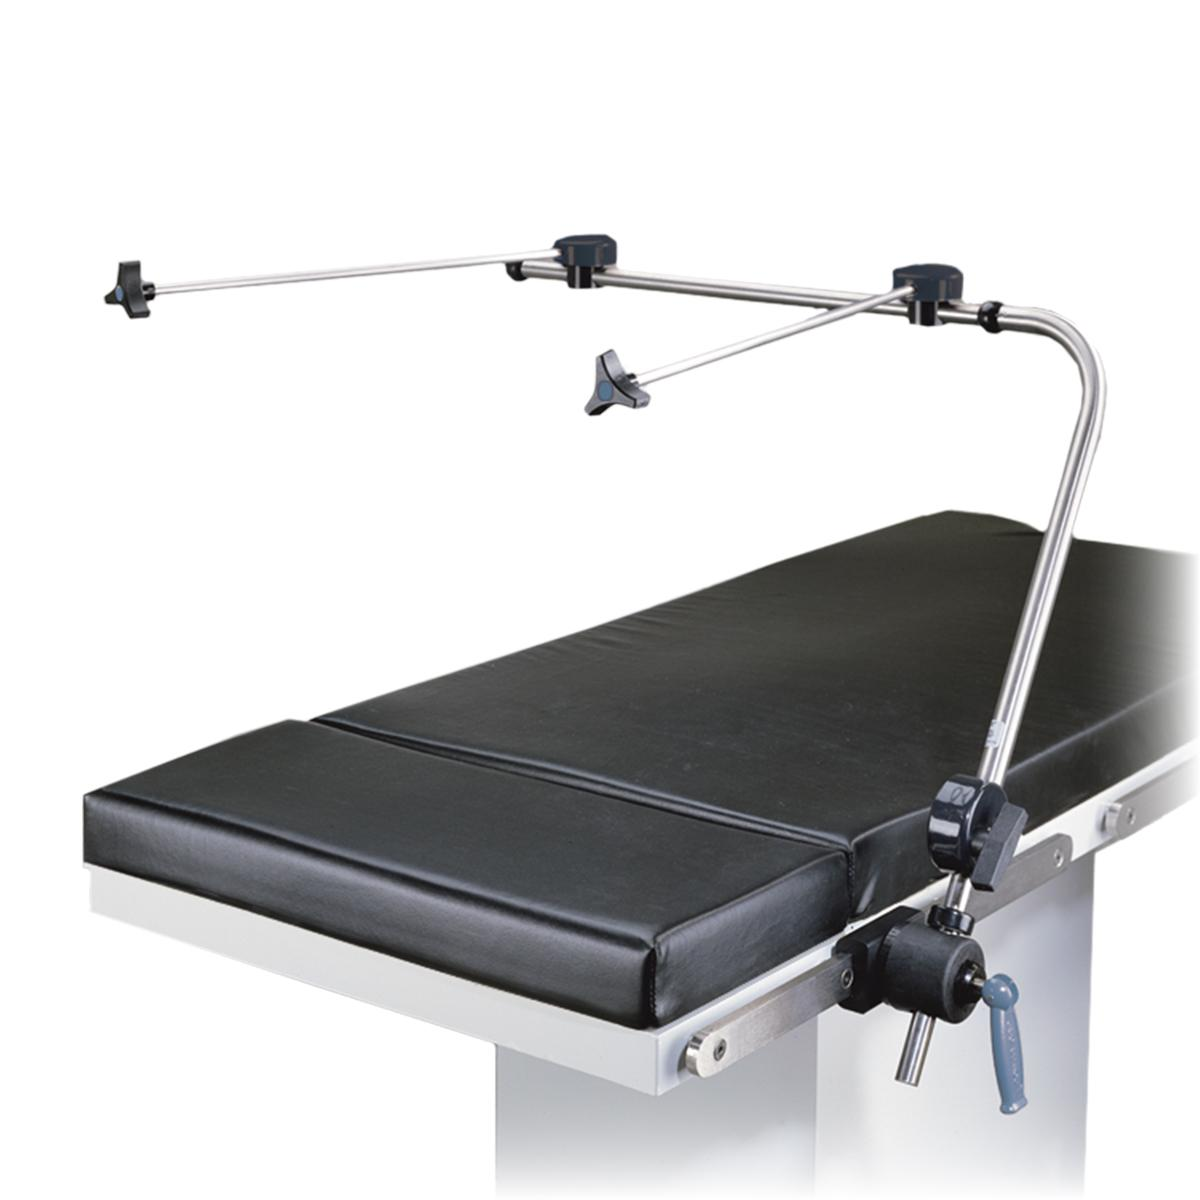 Anesthesia Screen - With Wings diagonal view on OR table